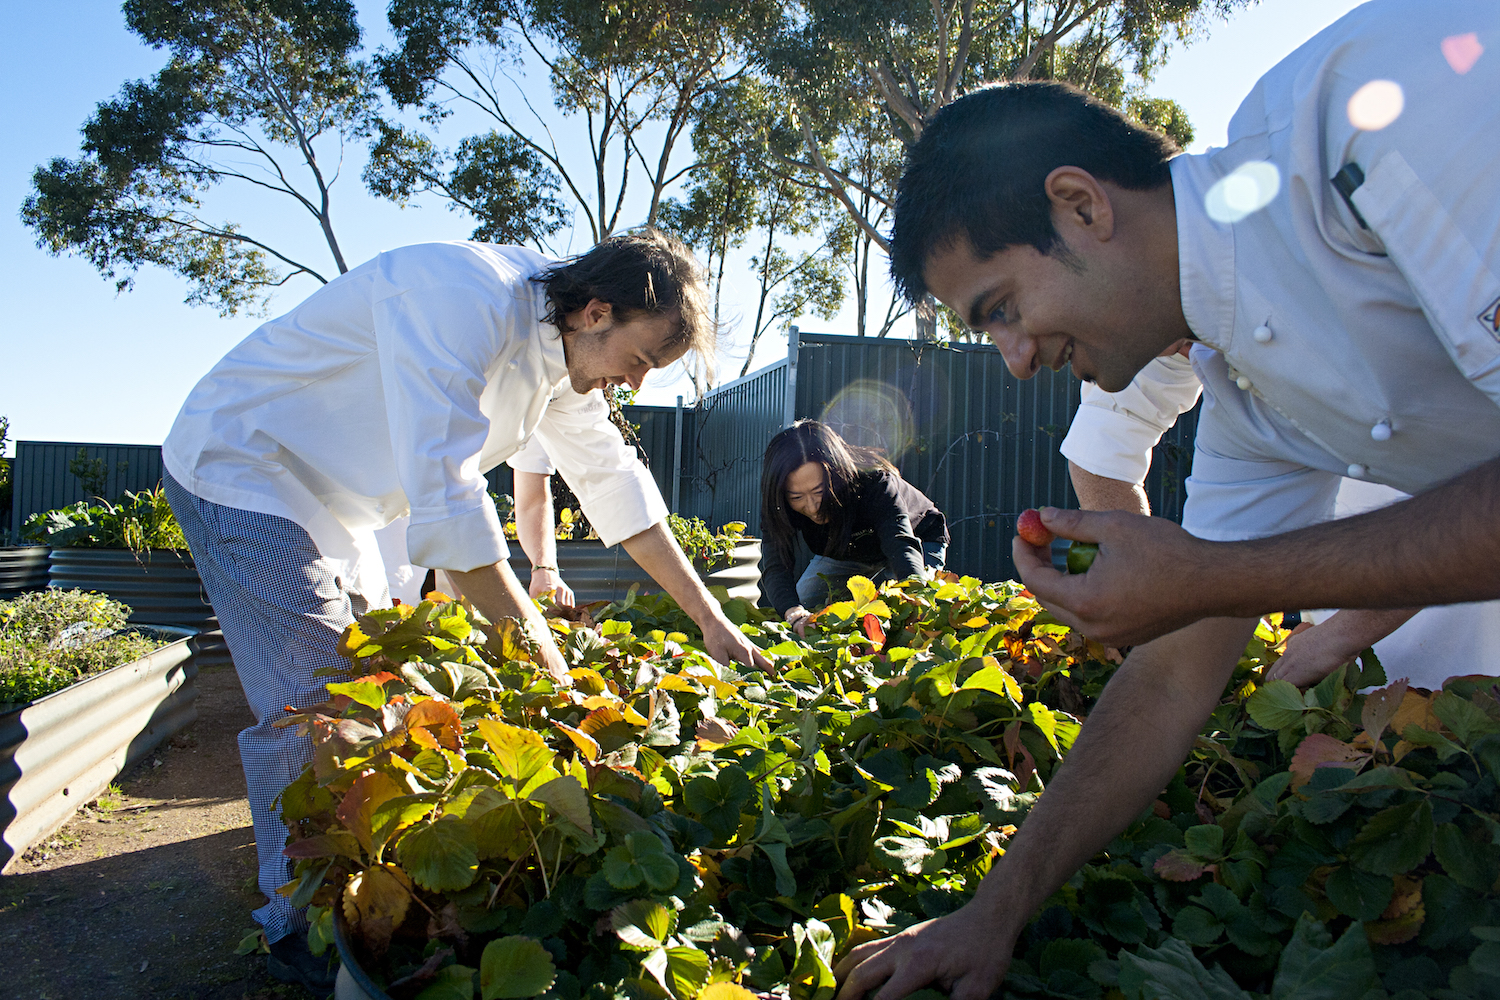 The Louise restaurant Appellation - chef's picking fresh food